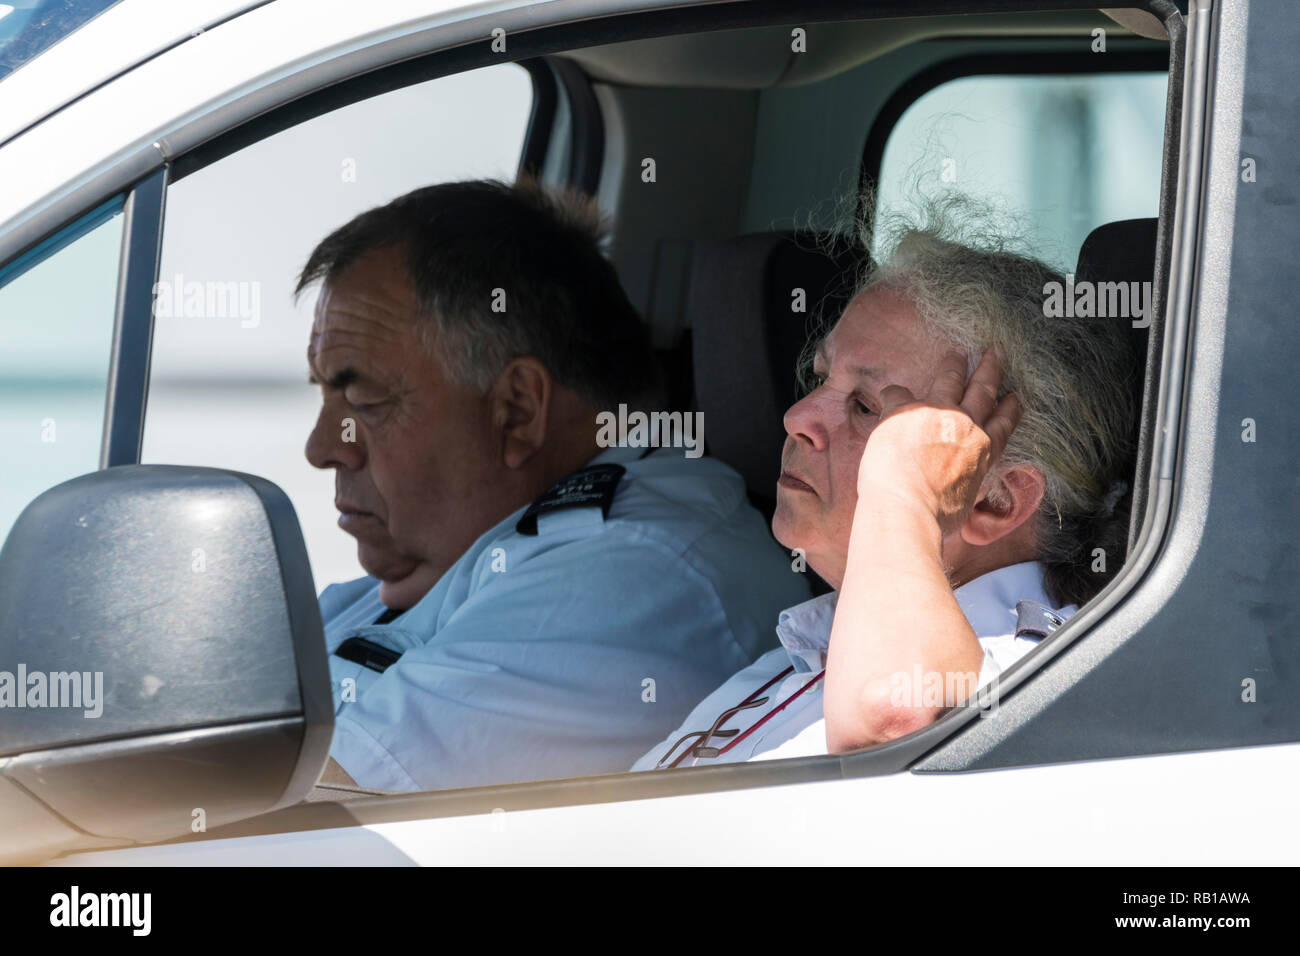 A couple of people looking bored and fed up, appearing to be parking wardens, sitting in a van seemingly looking out for victims, in the UK. - Stock Image